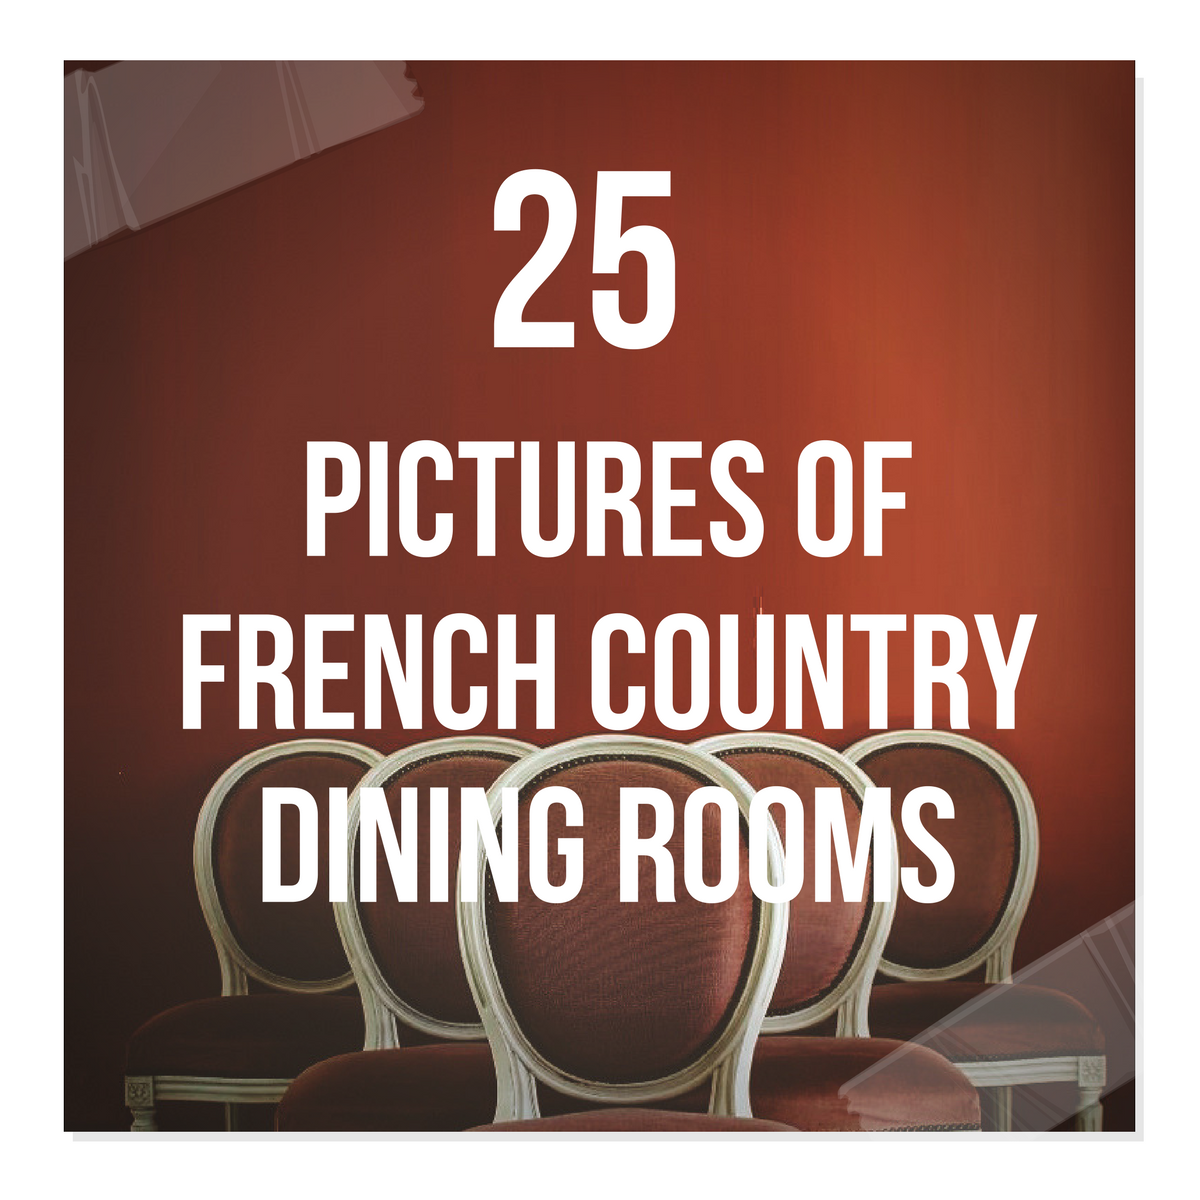 25 Pictures Of French Country Dining Rooms